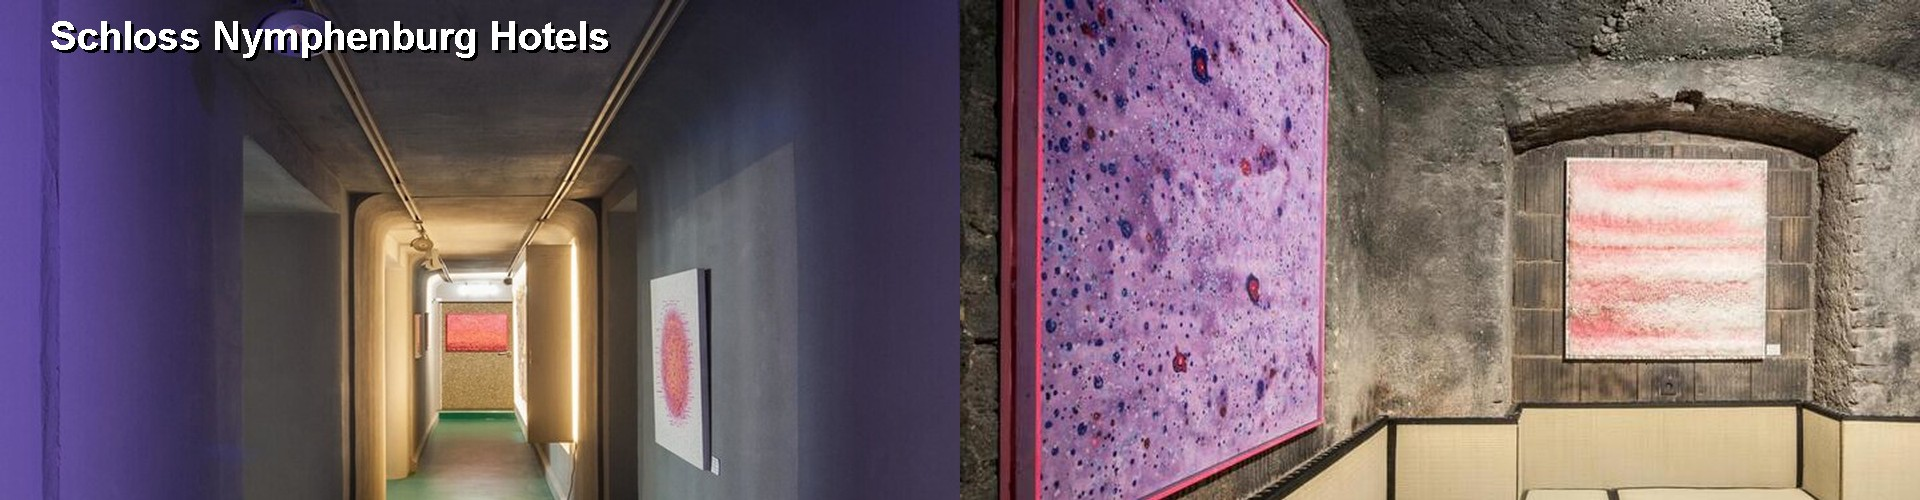 5 Best Hotels near Schloss Nymphenburg